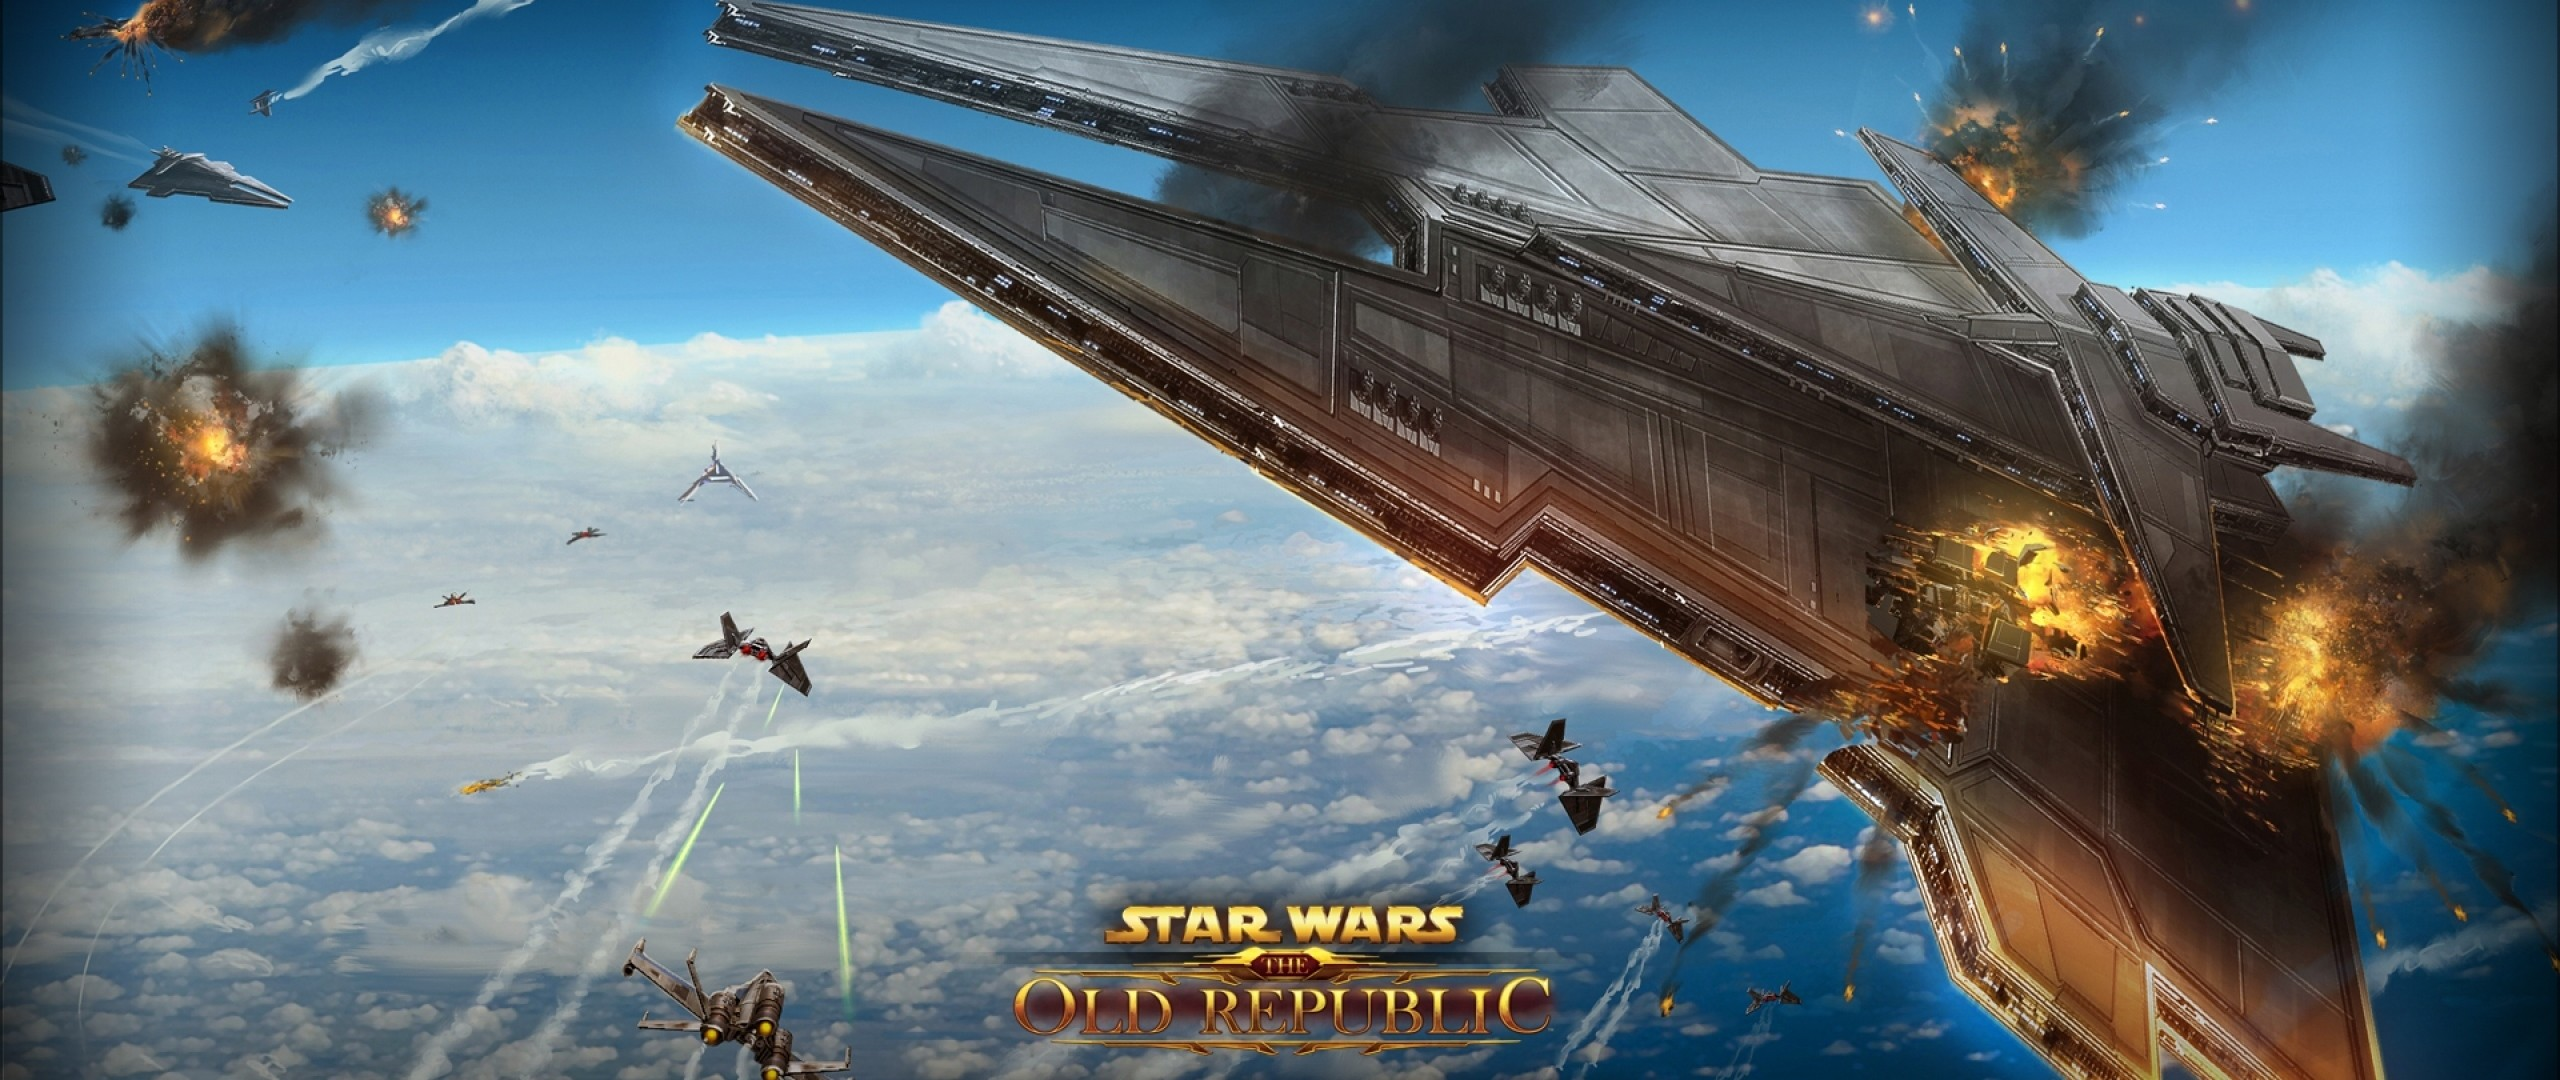 Wallpaper star wars the old republic, airships, battle,  explosion, planet